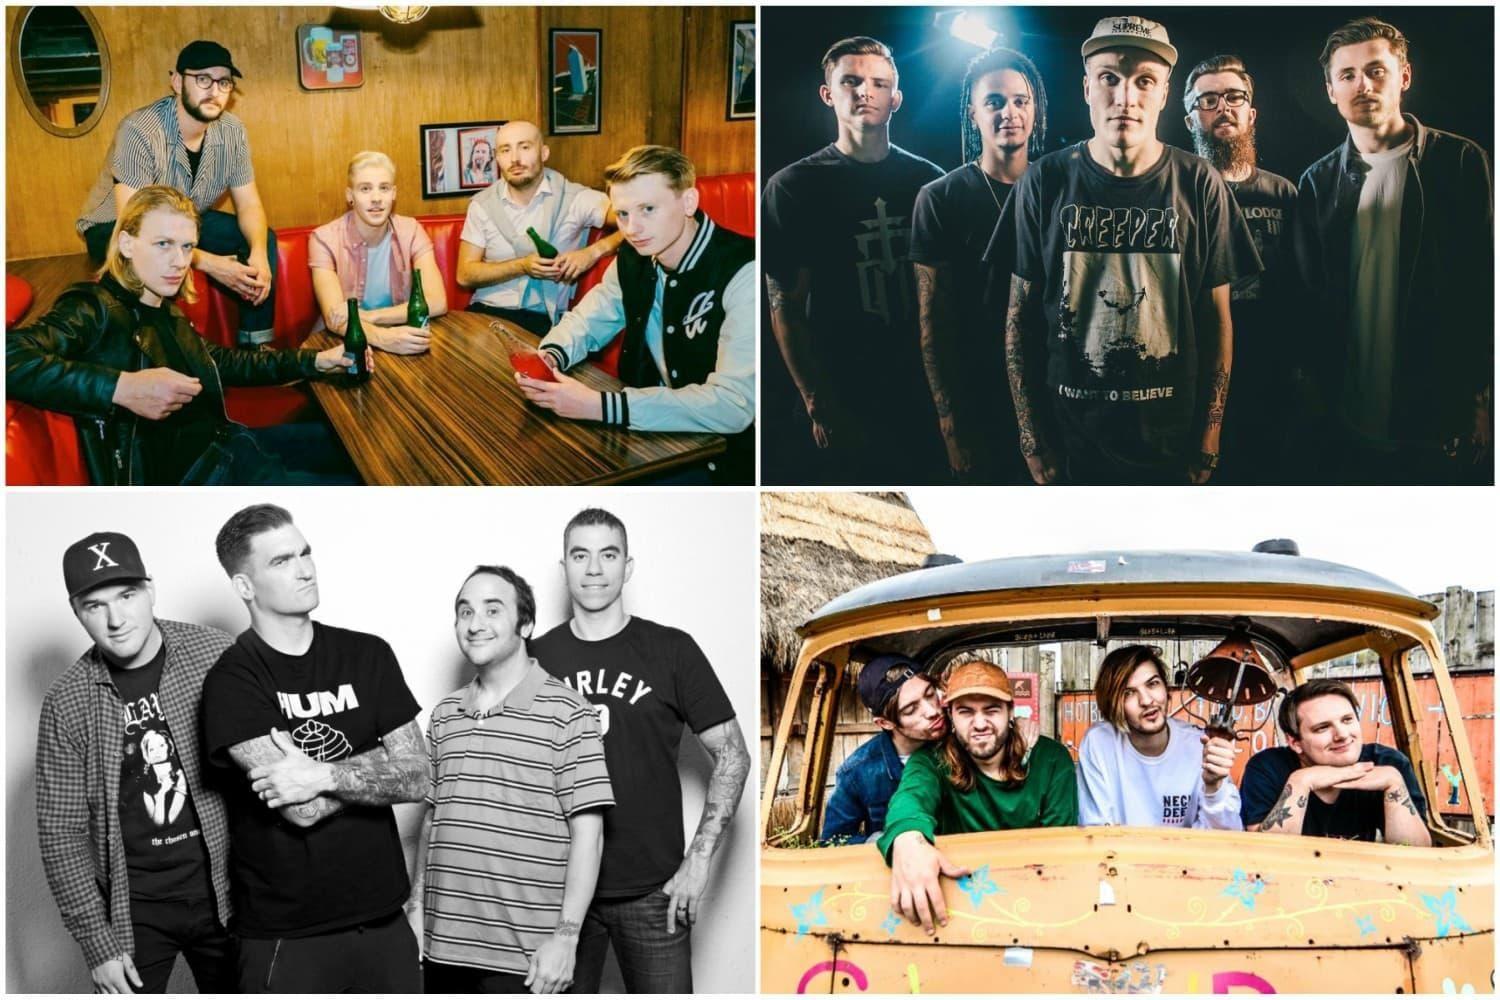 Pop punk's not dead! 2017 will be the year of big choruses and bigger smiles